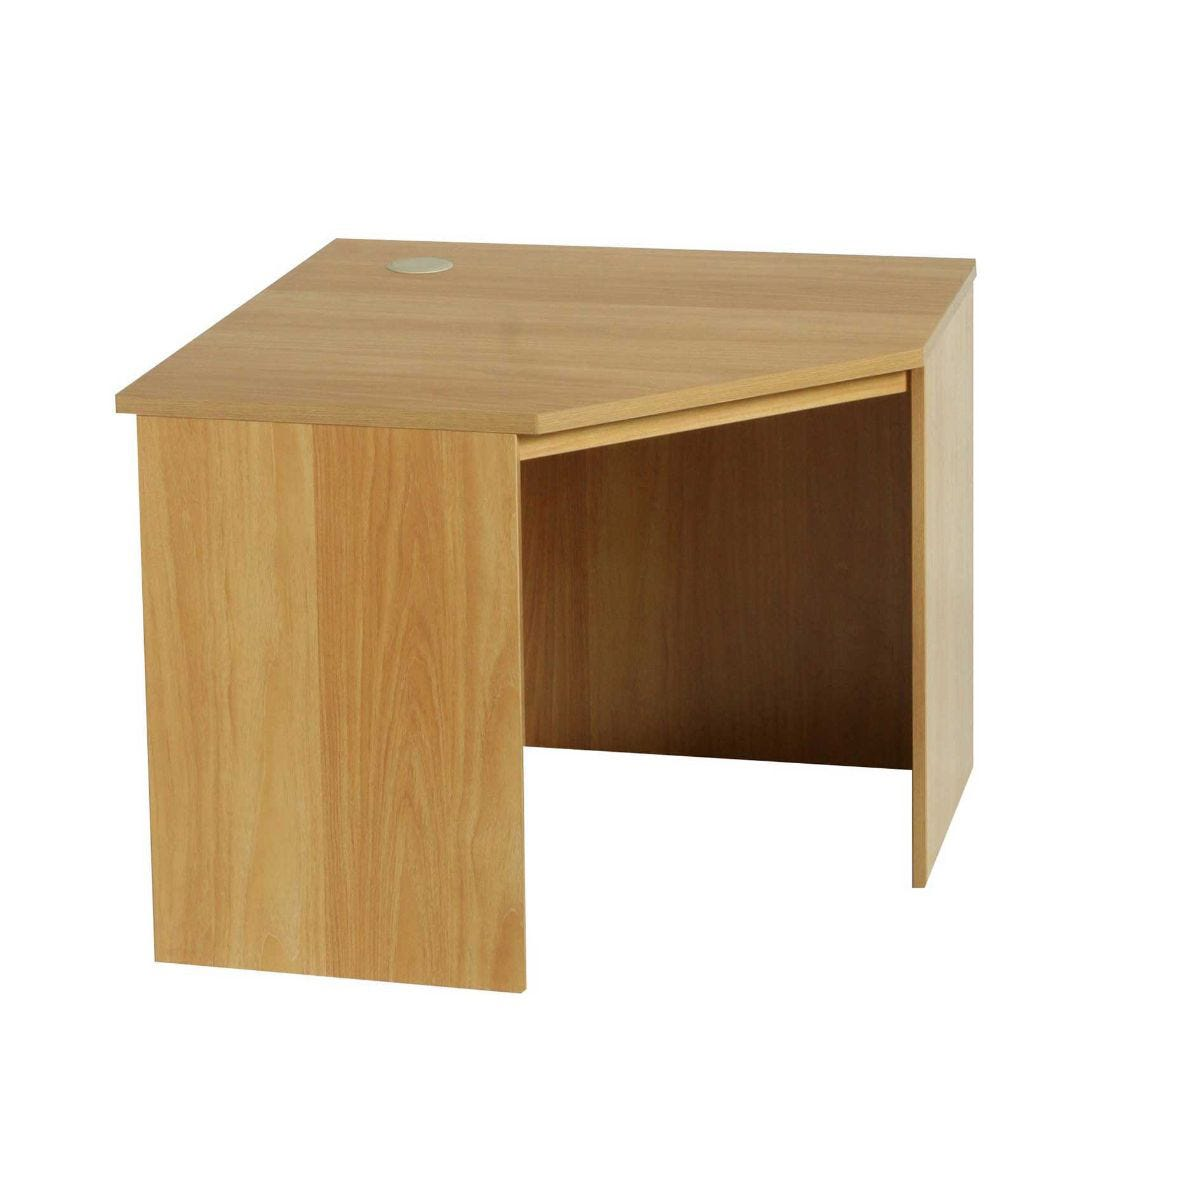 Modular Office Furniture Desks Furniture Storage Ryman